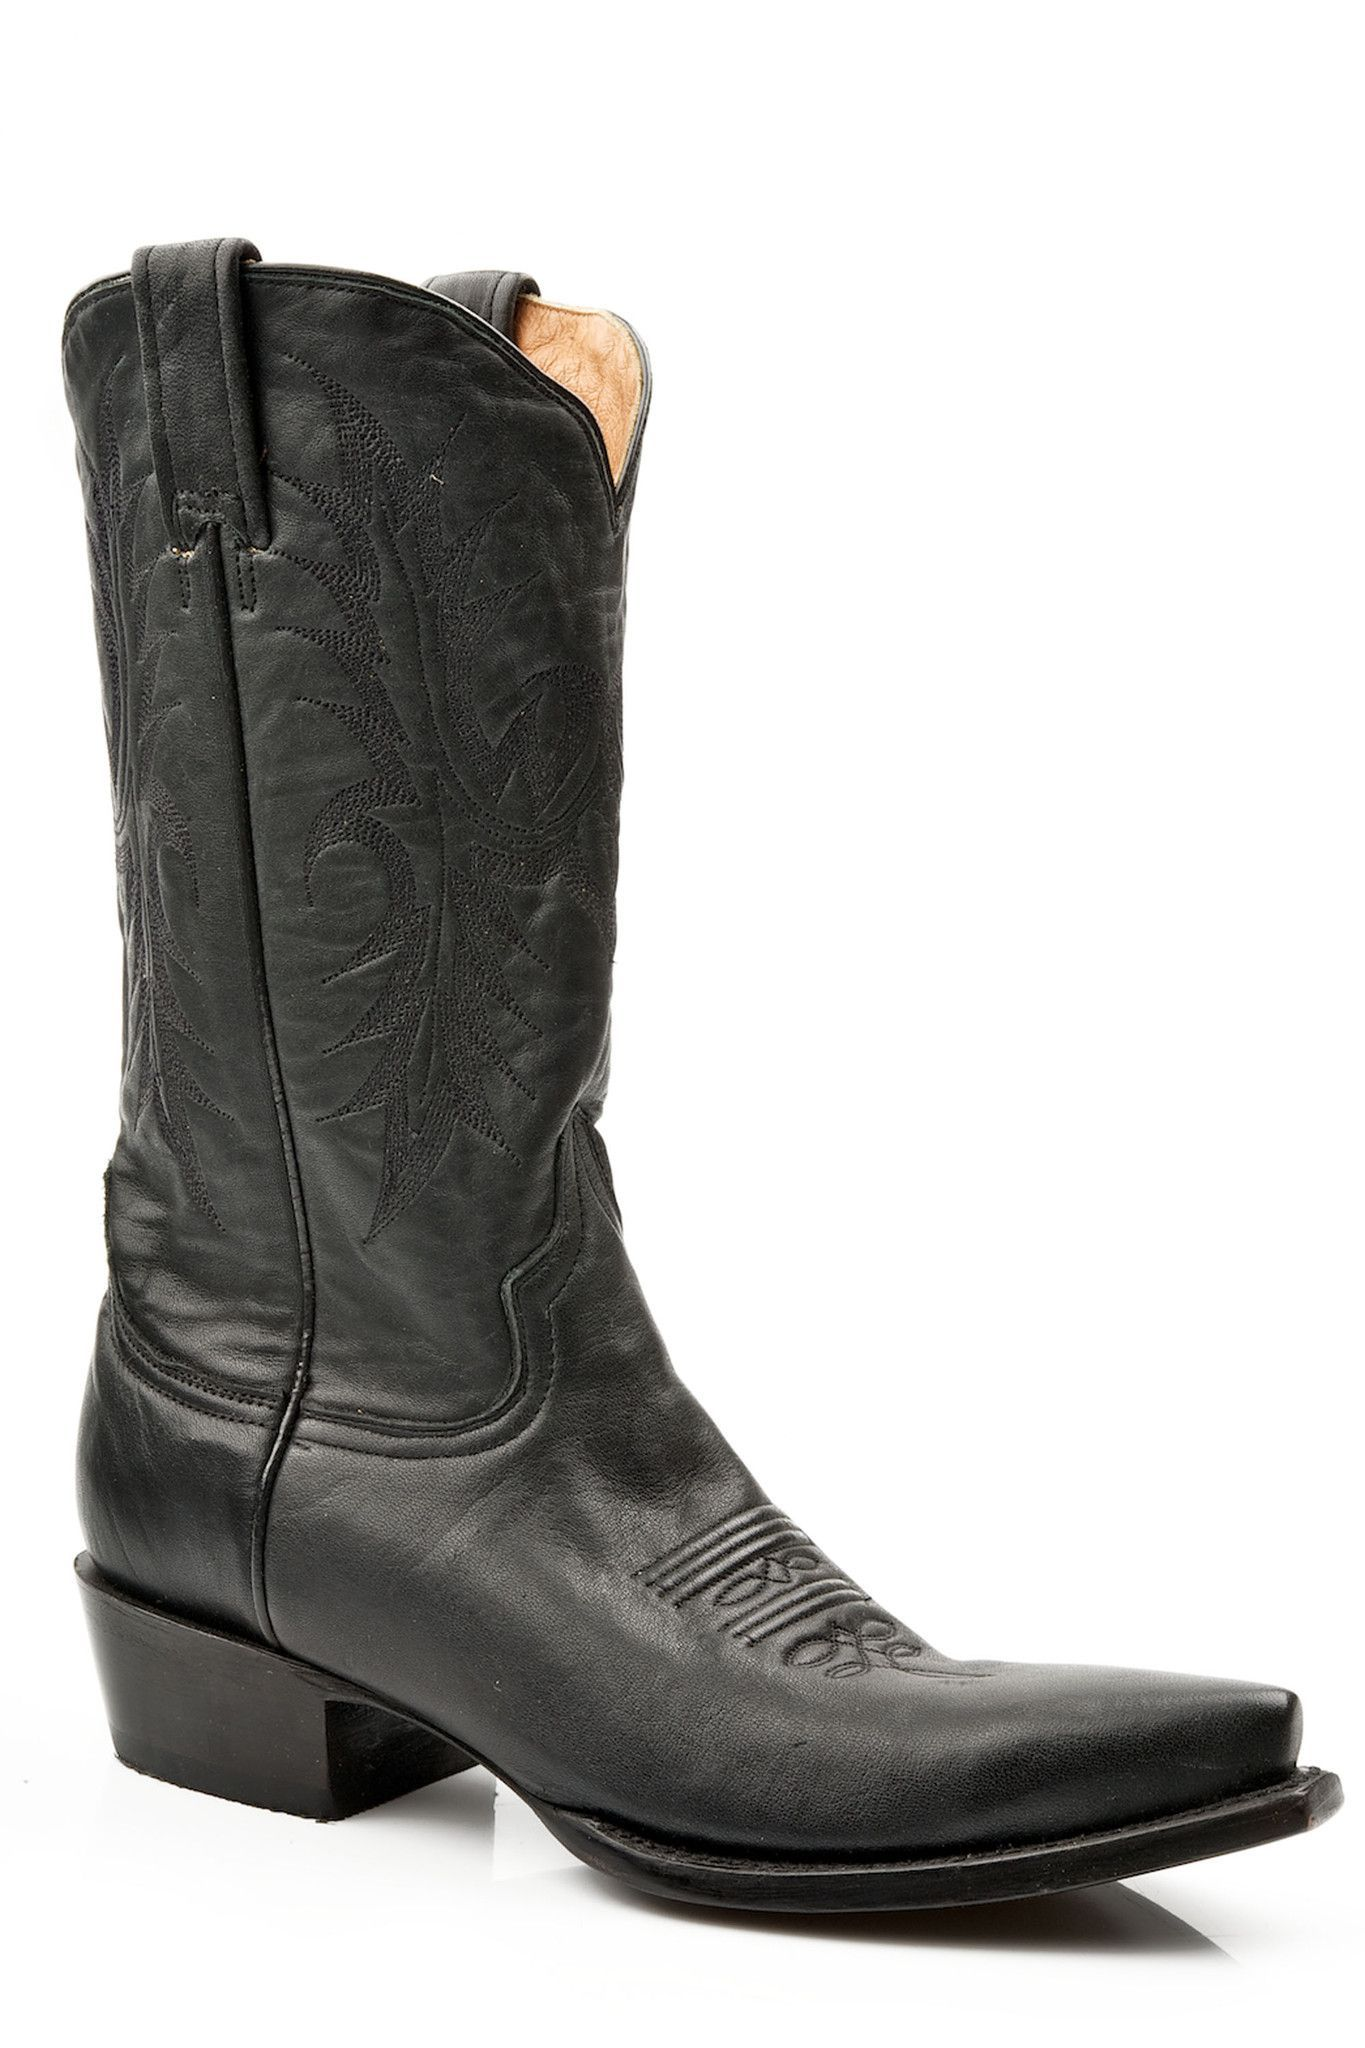 be31a54db00 Stetson Ladies Fashion Snip Toe Boots 12hand Burnished Ficcini Black ...